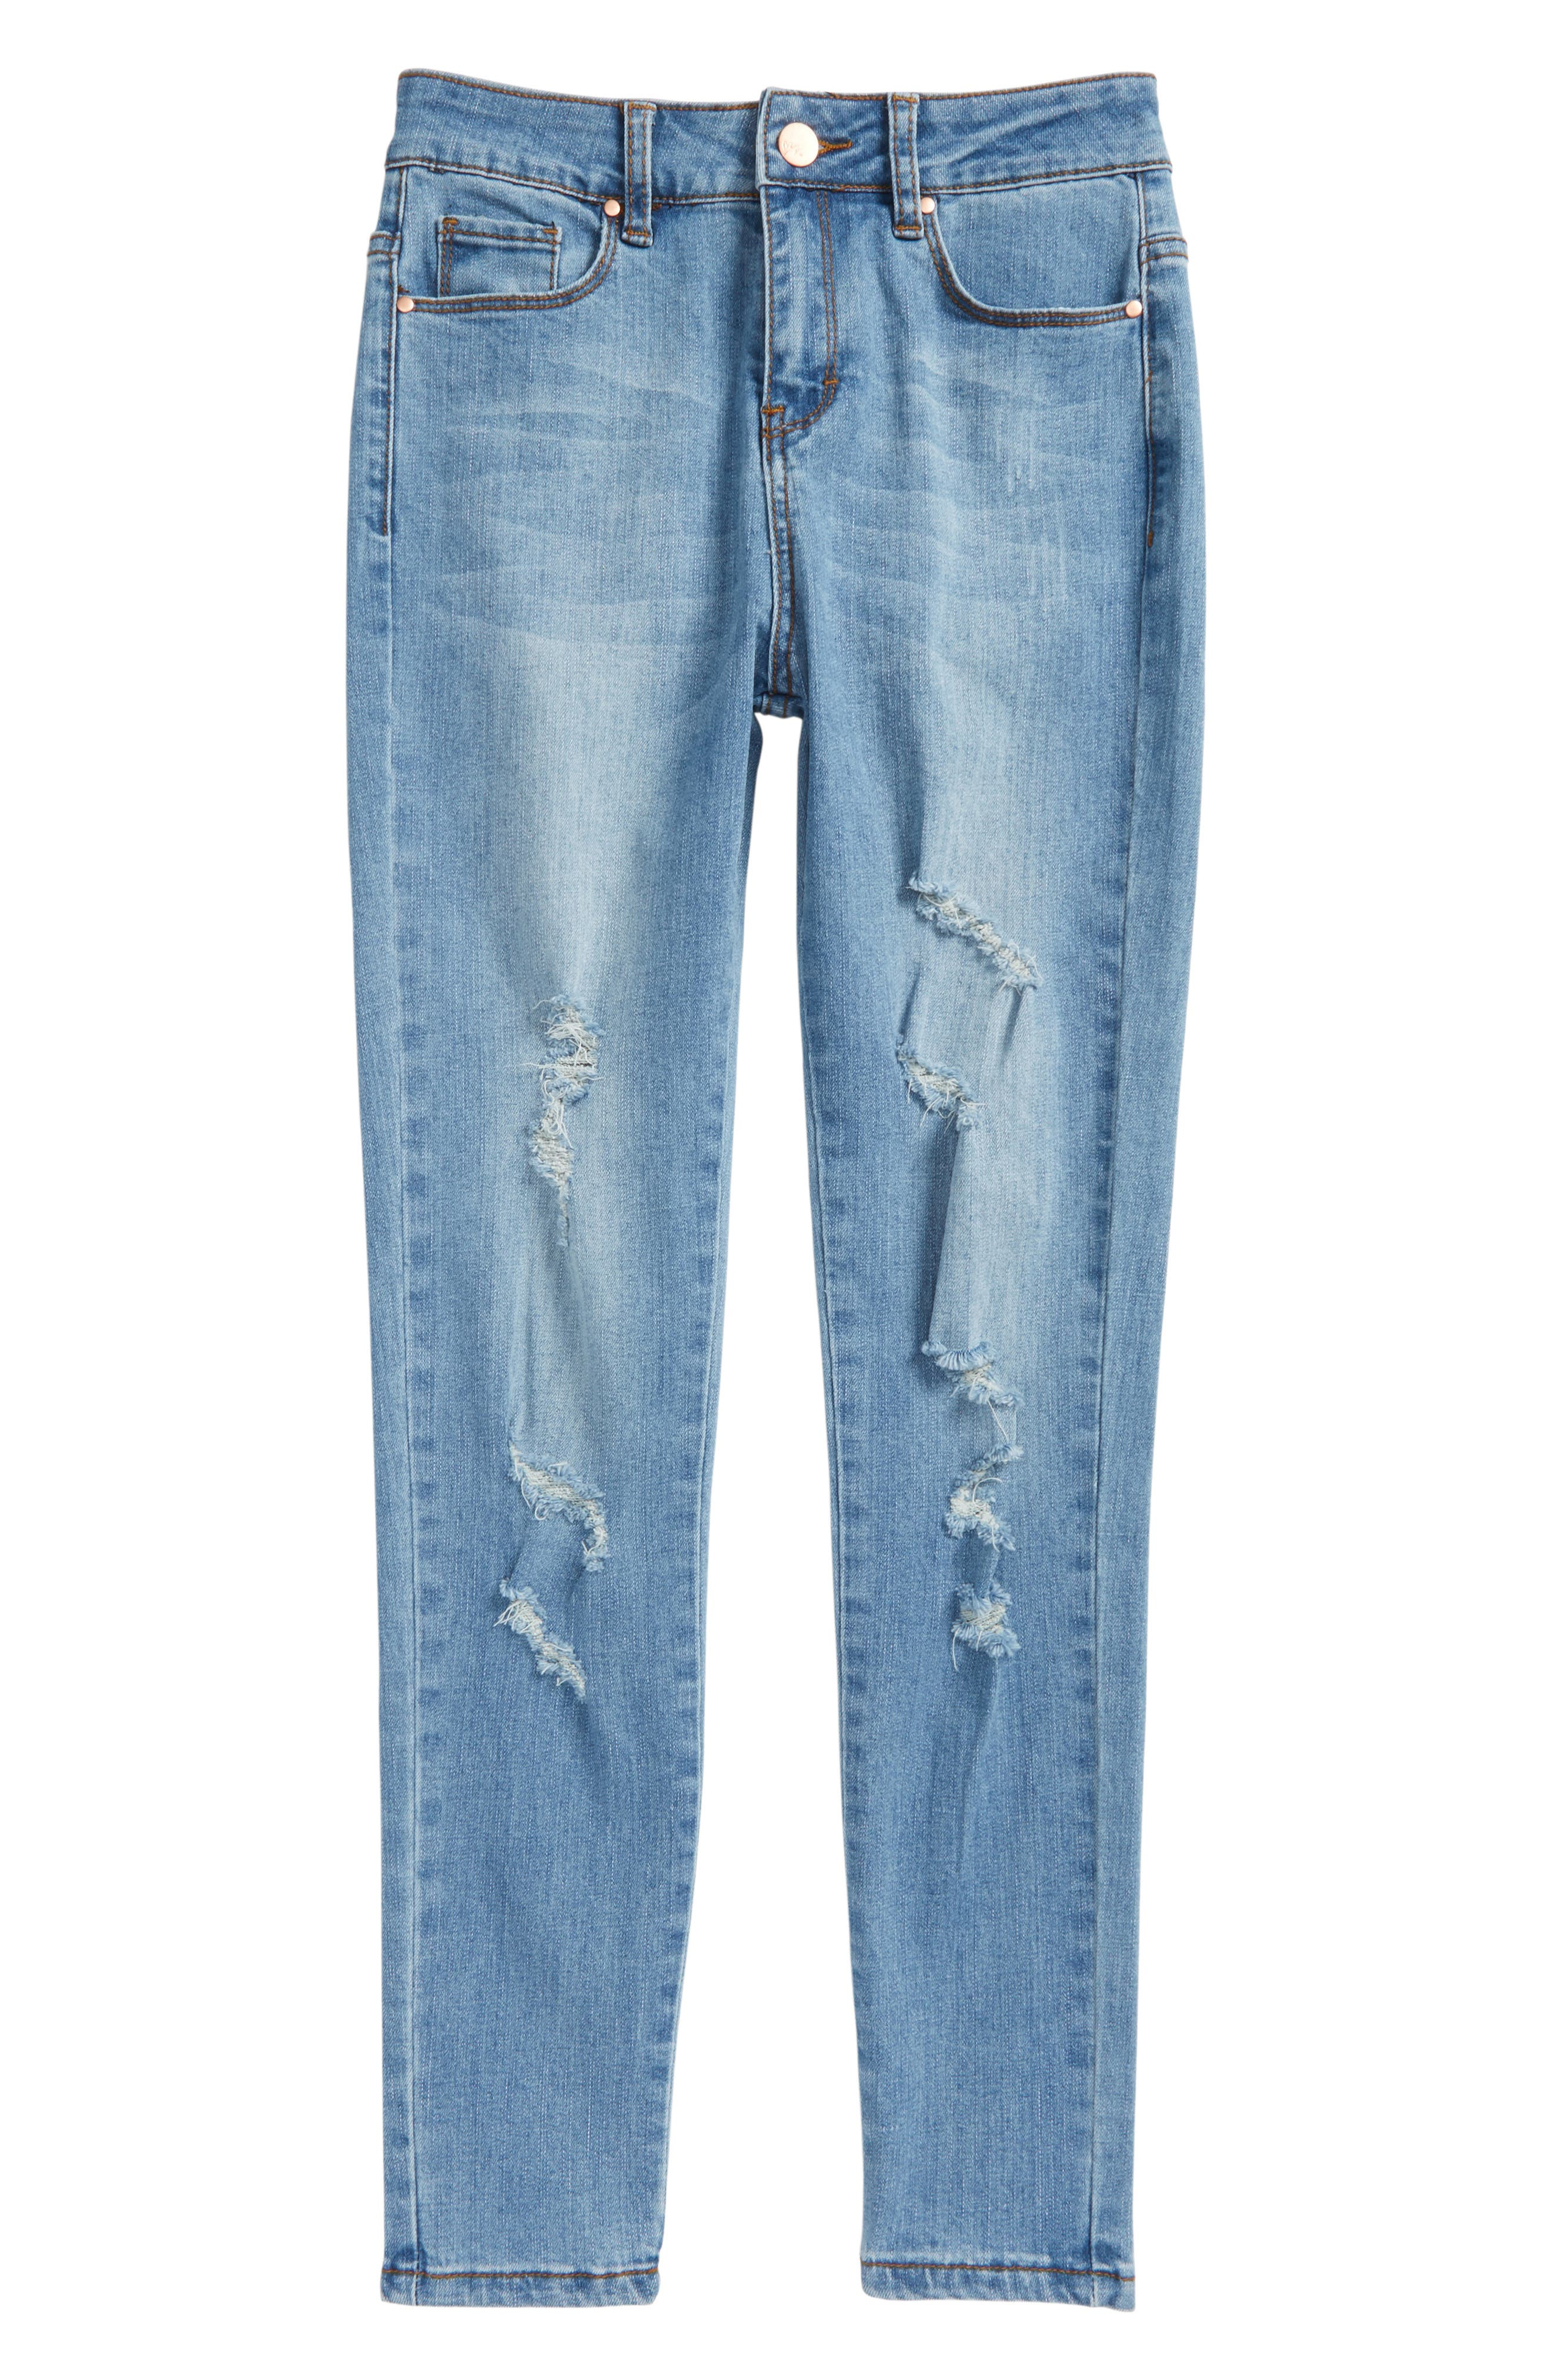 Distressed Skinny Jeans,                             Main thumbnail 1, color,                             Light Blue Denim